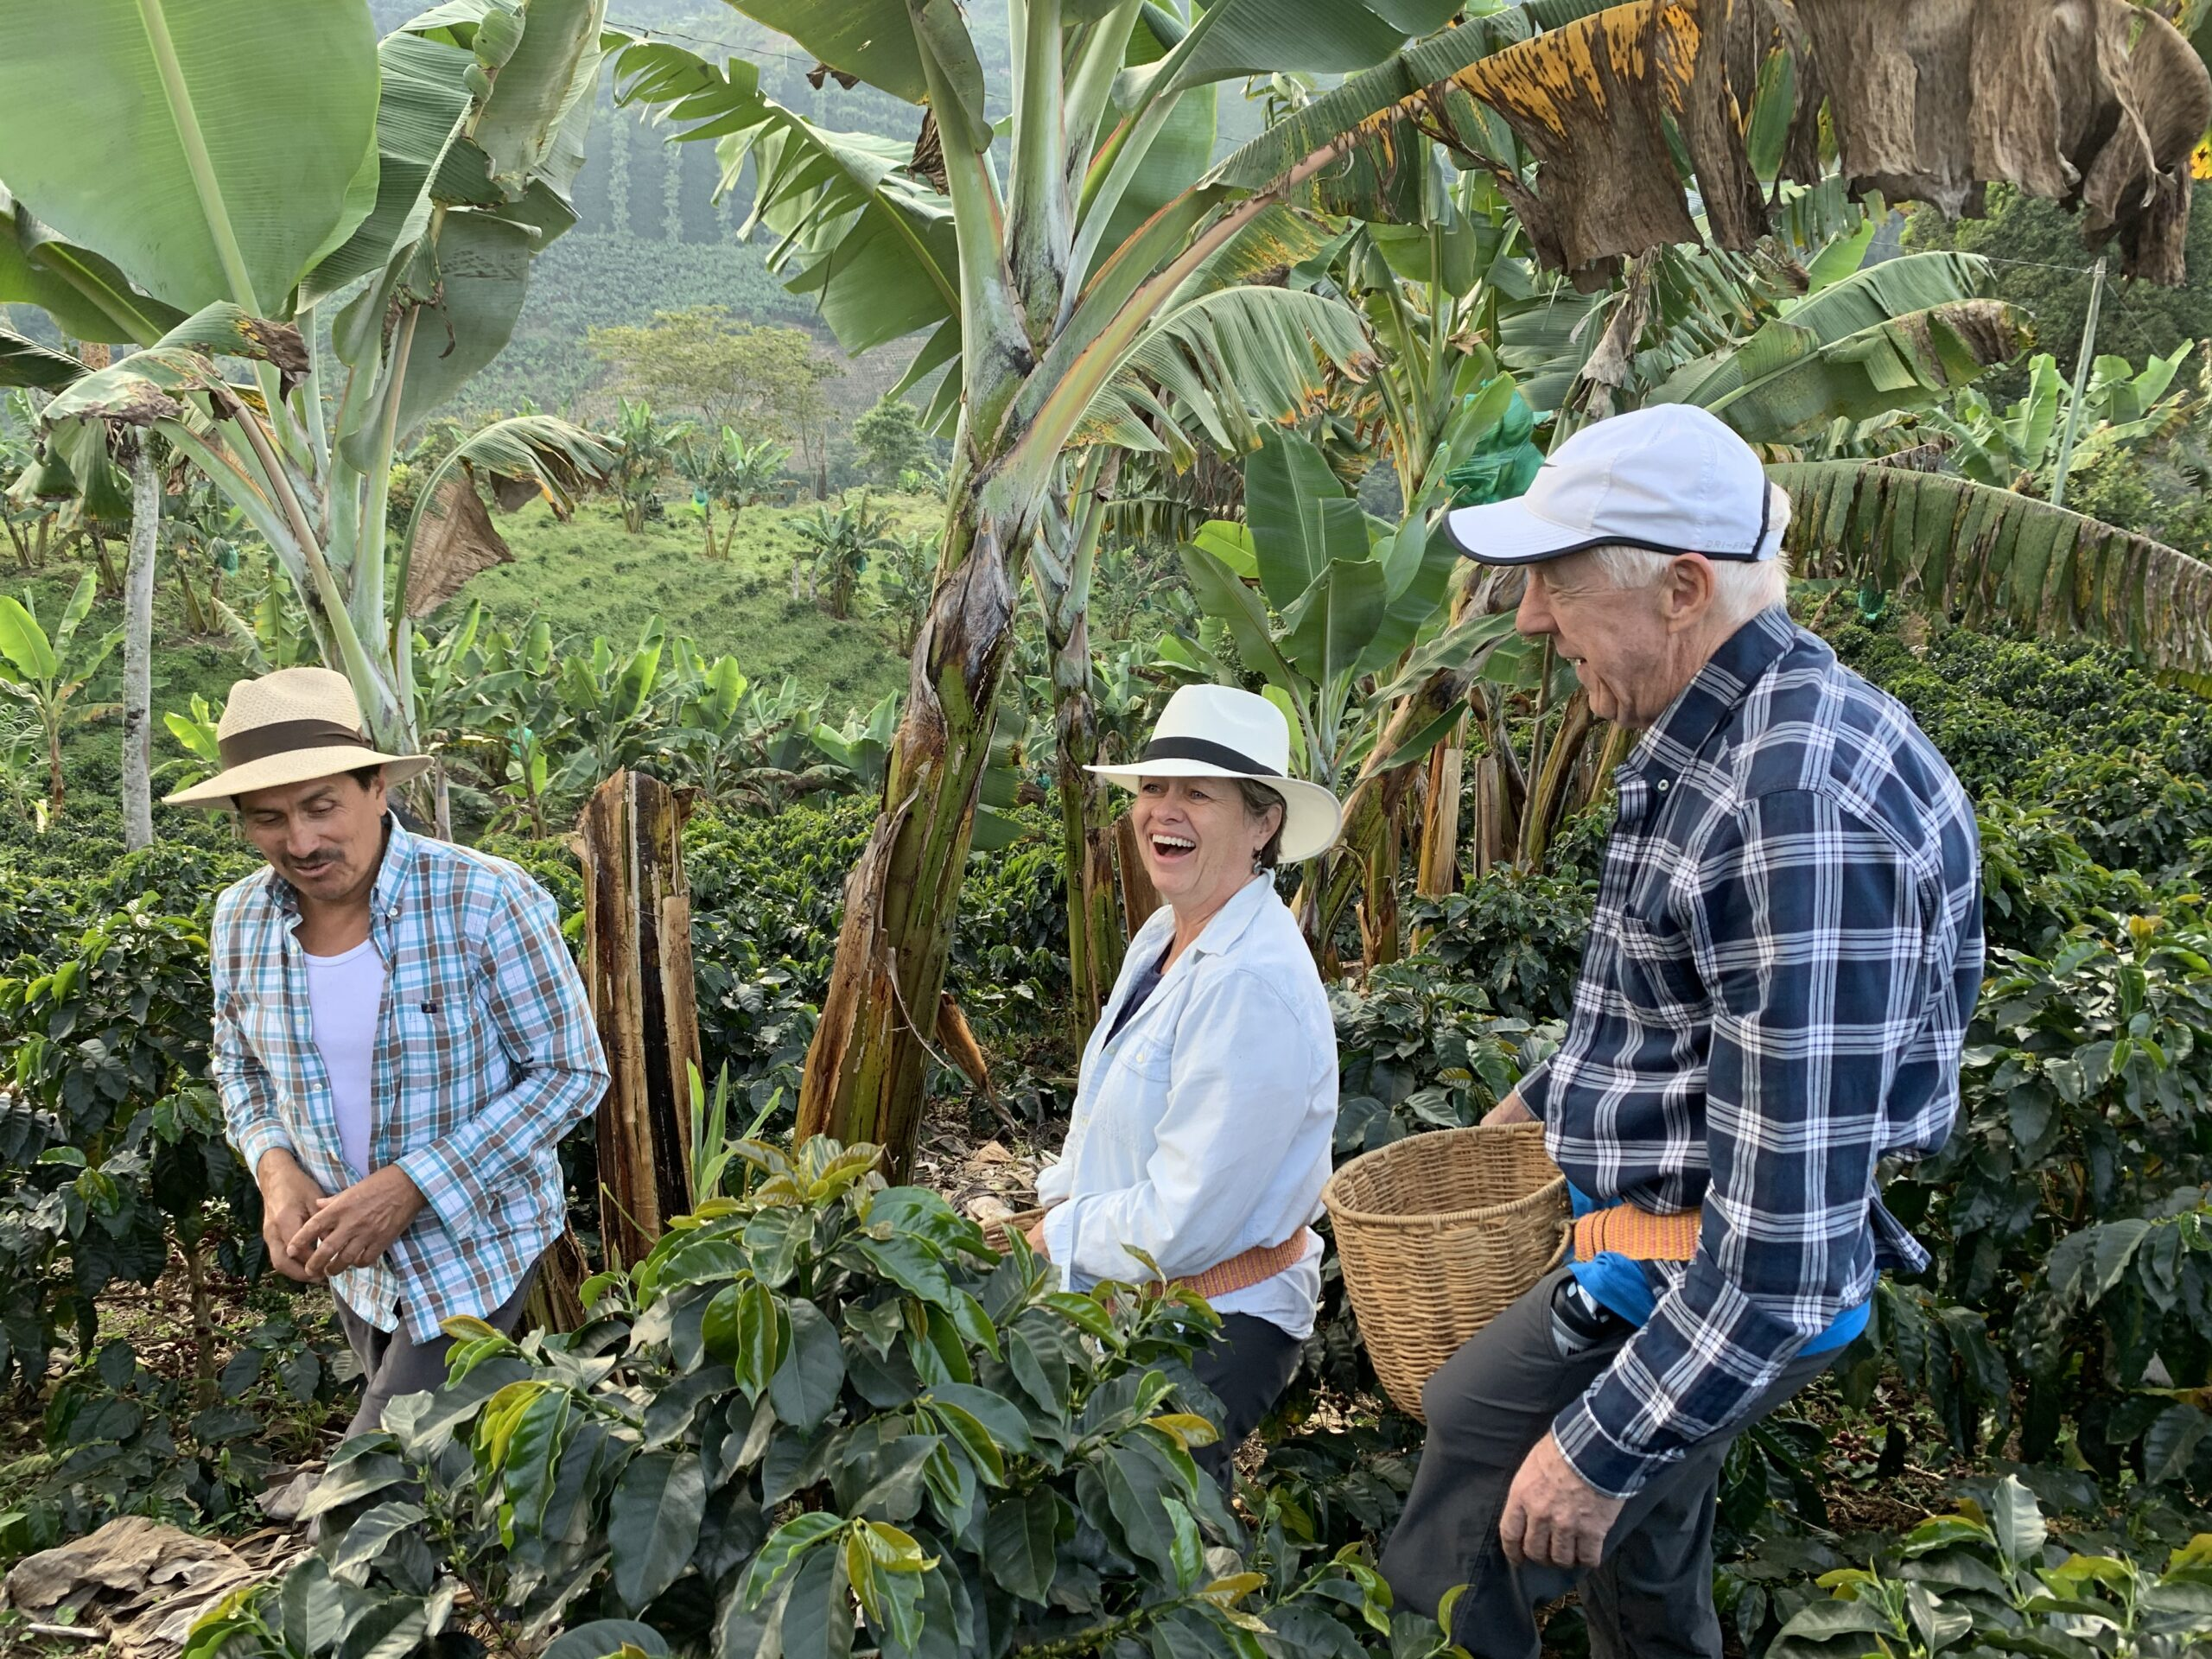 Guests of Finca Mariposa picking coffee cherries on the farm